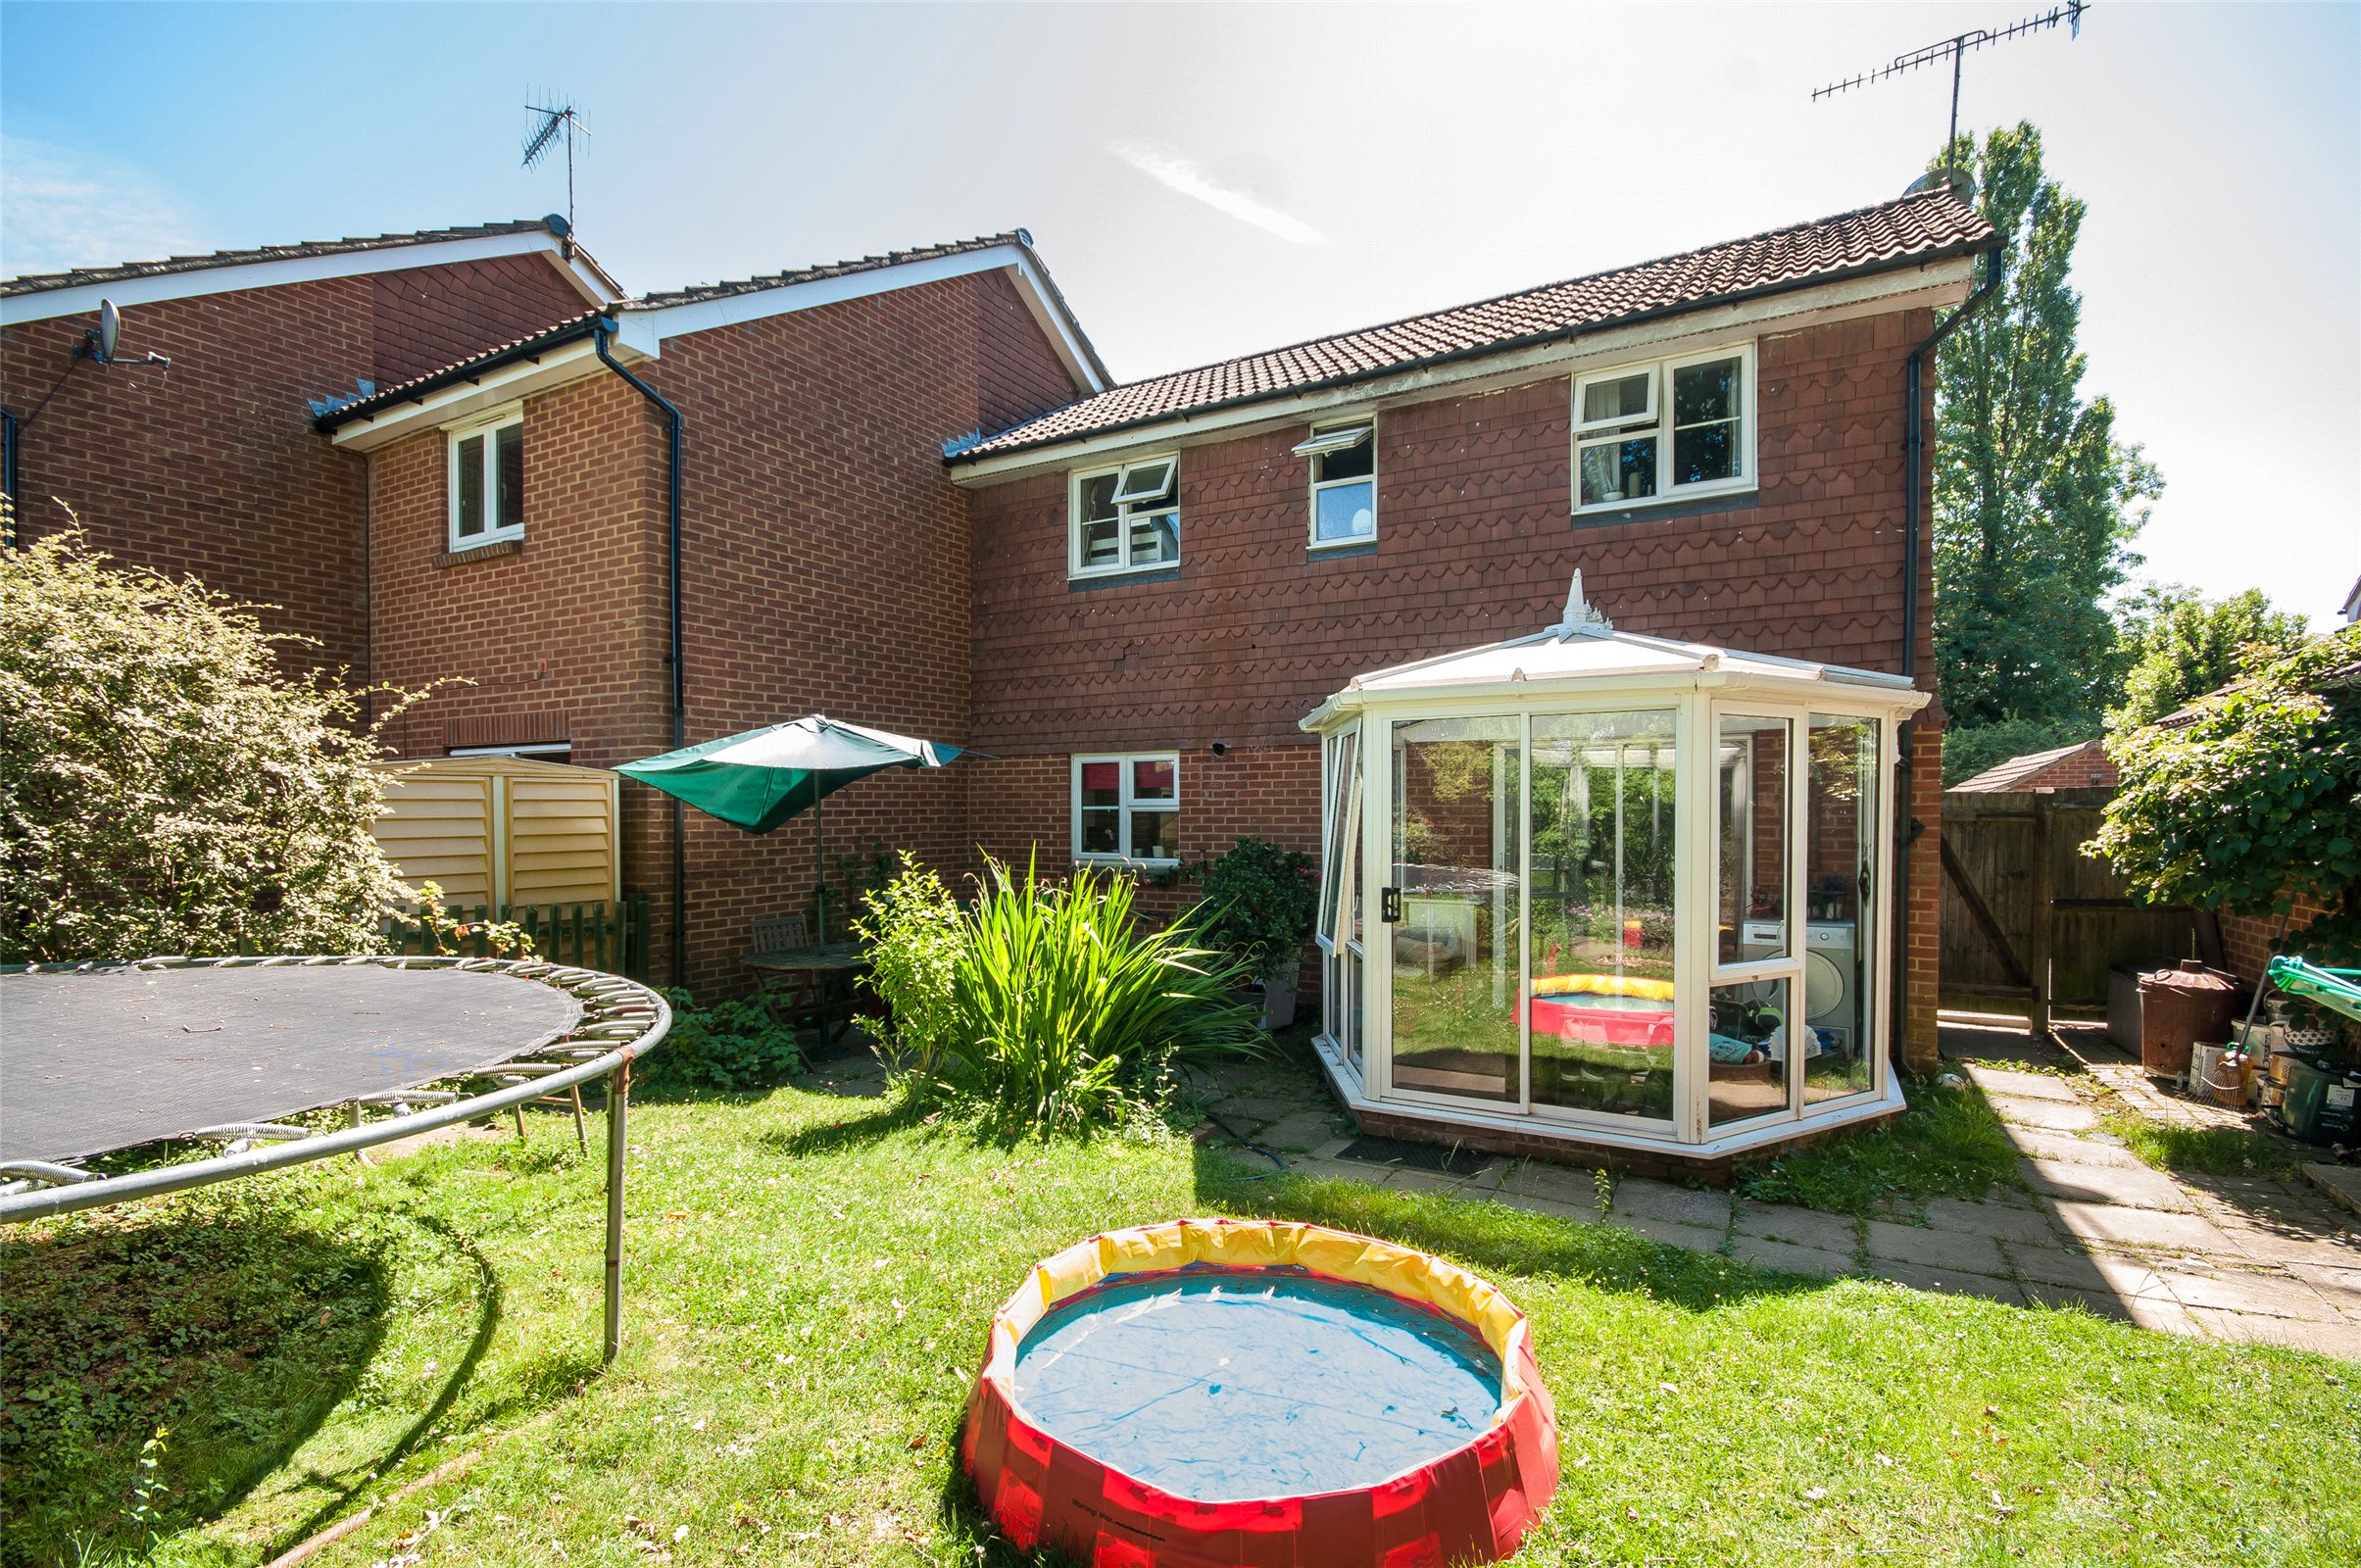 3 Bedrooms Semi Detached House for sale in Bakers Way, Capel, Dorking, Surrey, RH5